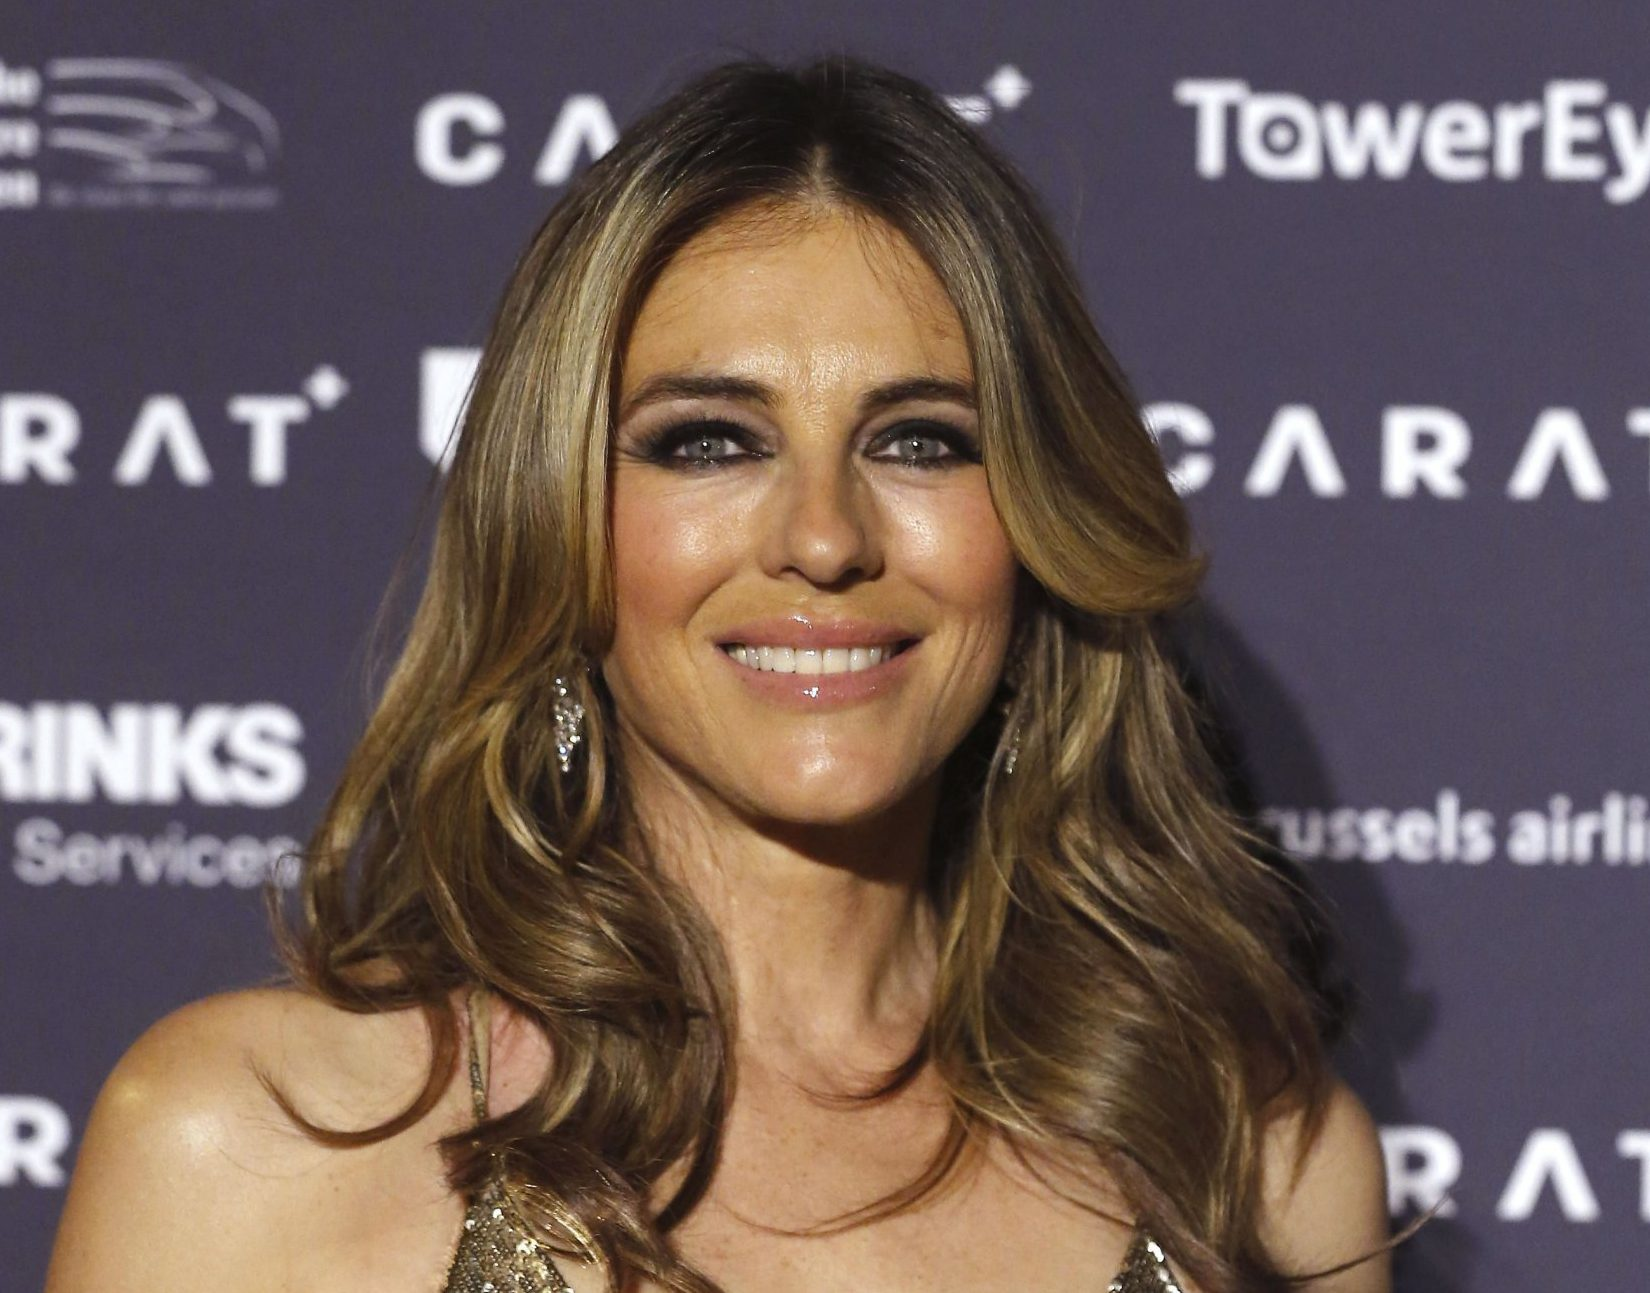 Mandatory Credit: Photo by Nicolas Maeterlinck/Belga via ZUMA Press/REX/Shutterstock (9664437k) Elizabeth Hurley 'Carat+' exhibition opening, Antwerp World Diamond Centre, Belgium - 06 May 2018